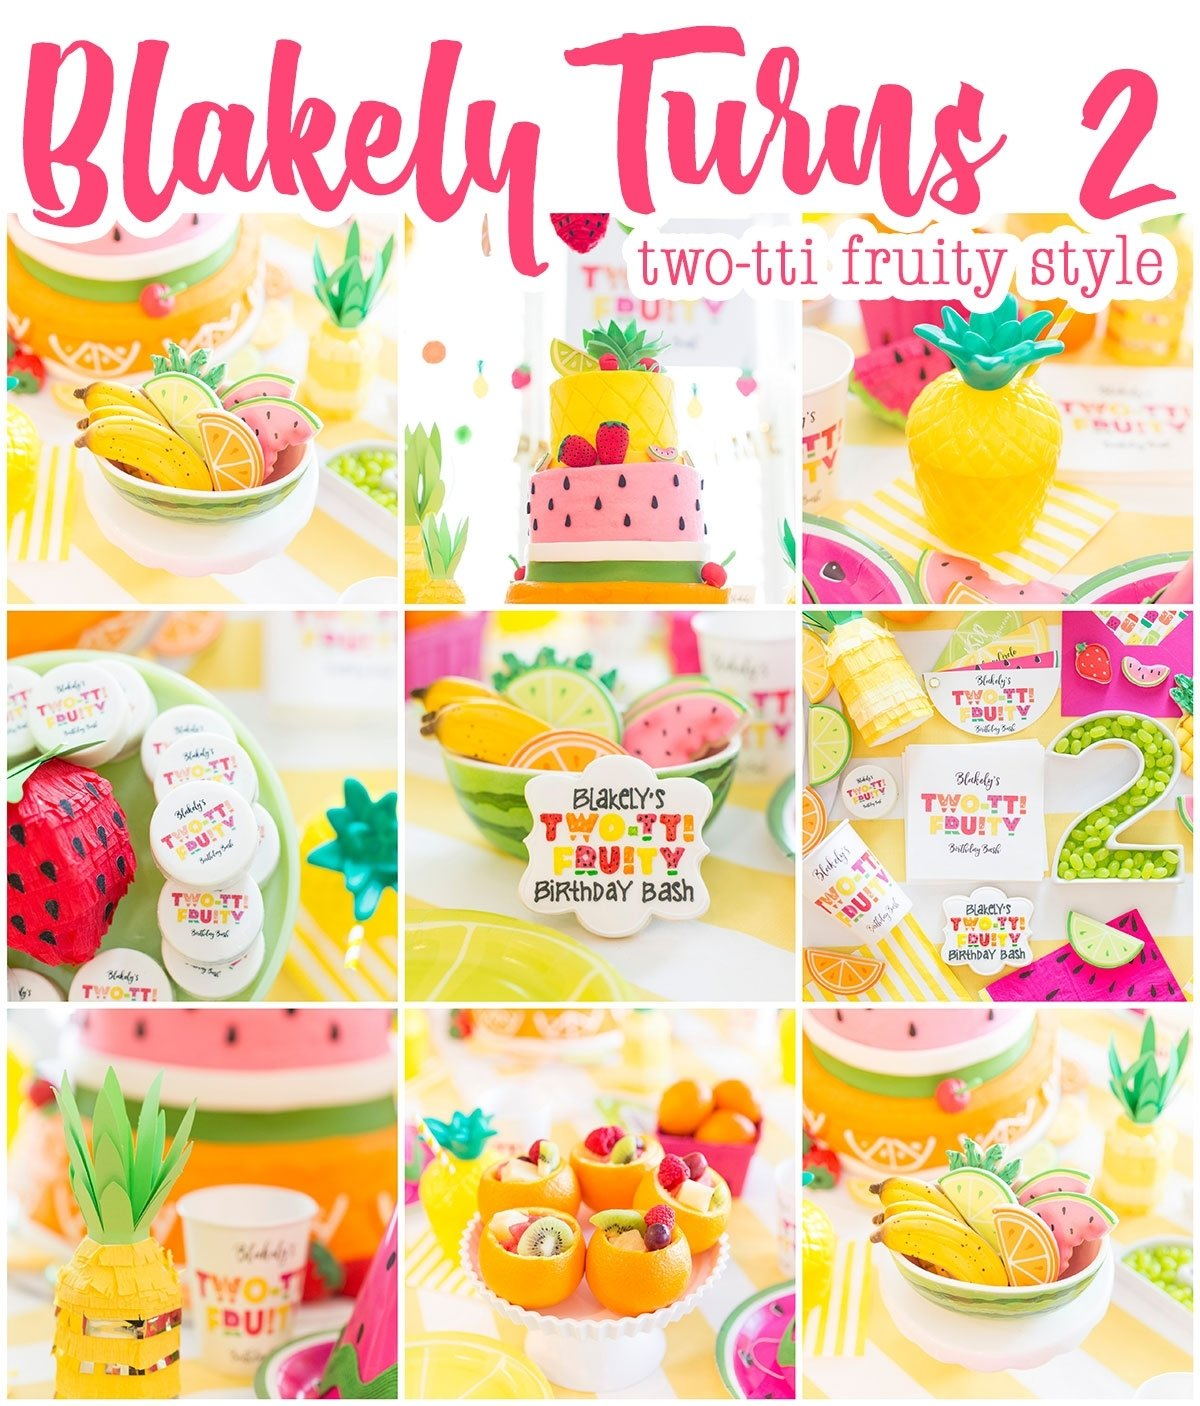 10 Stylish 2 Year Old Birthday Party Ideas Girl two tti fruity birthday party blakely turns 2 pizzazzerie 5 2020